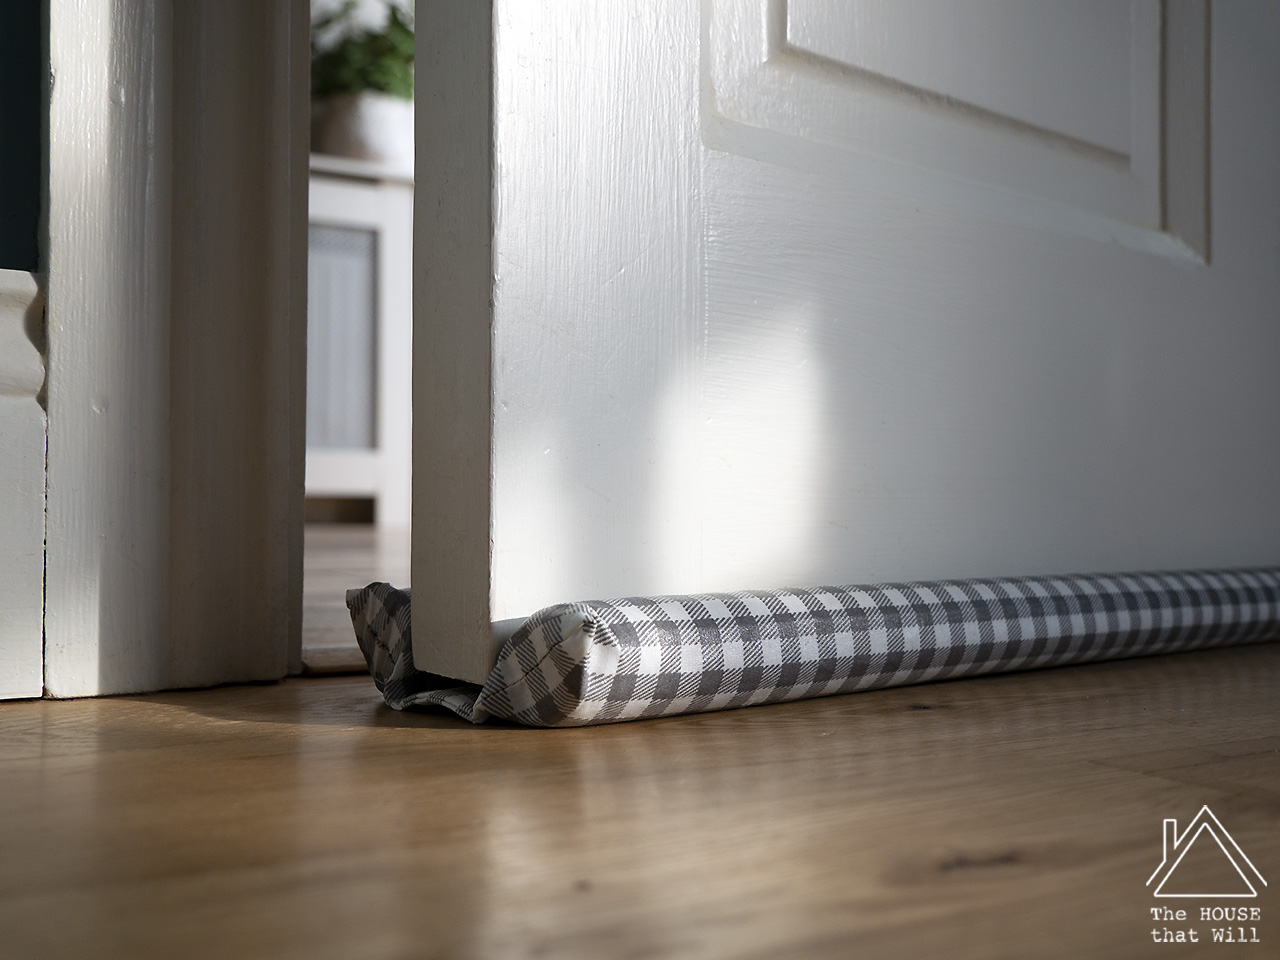 The House that Will | DIY Draught Excluder for Doors - eliminate drafts